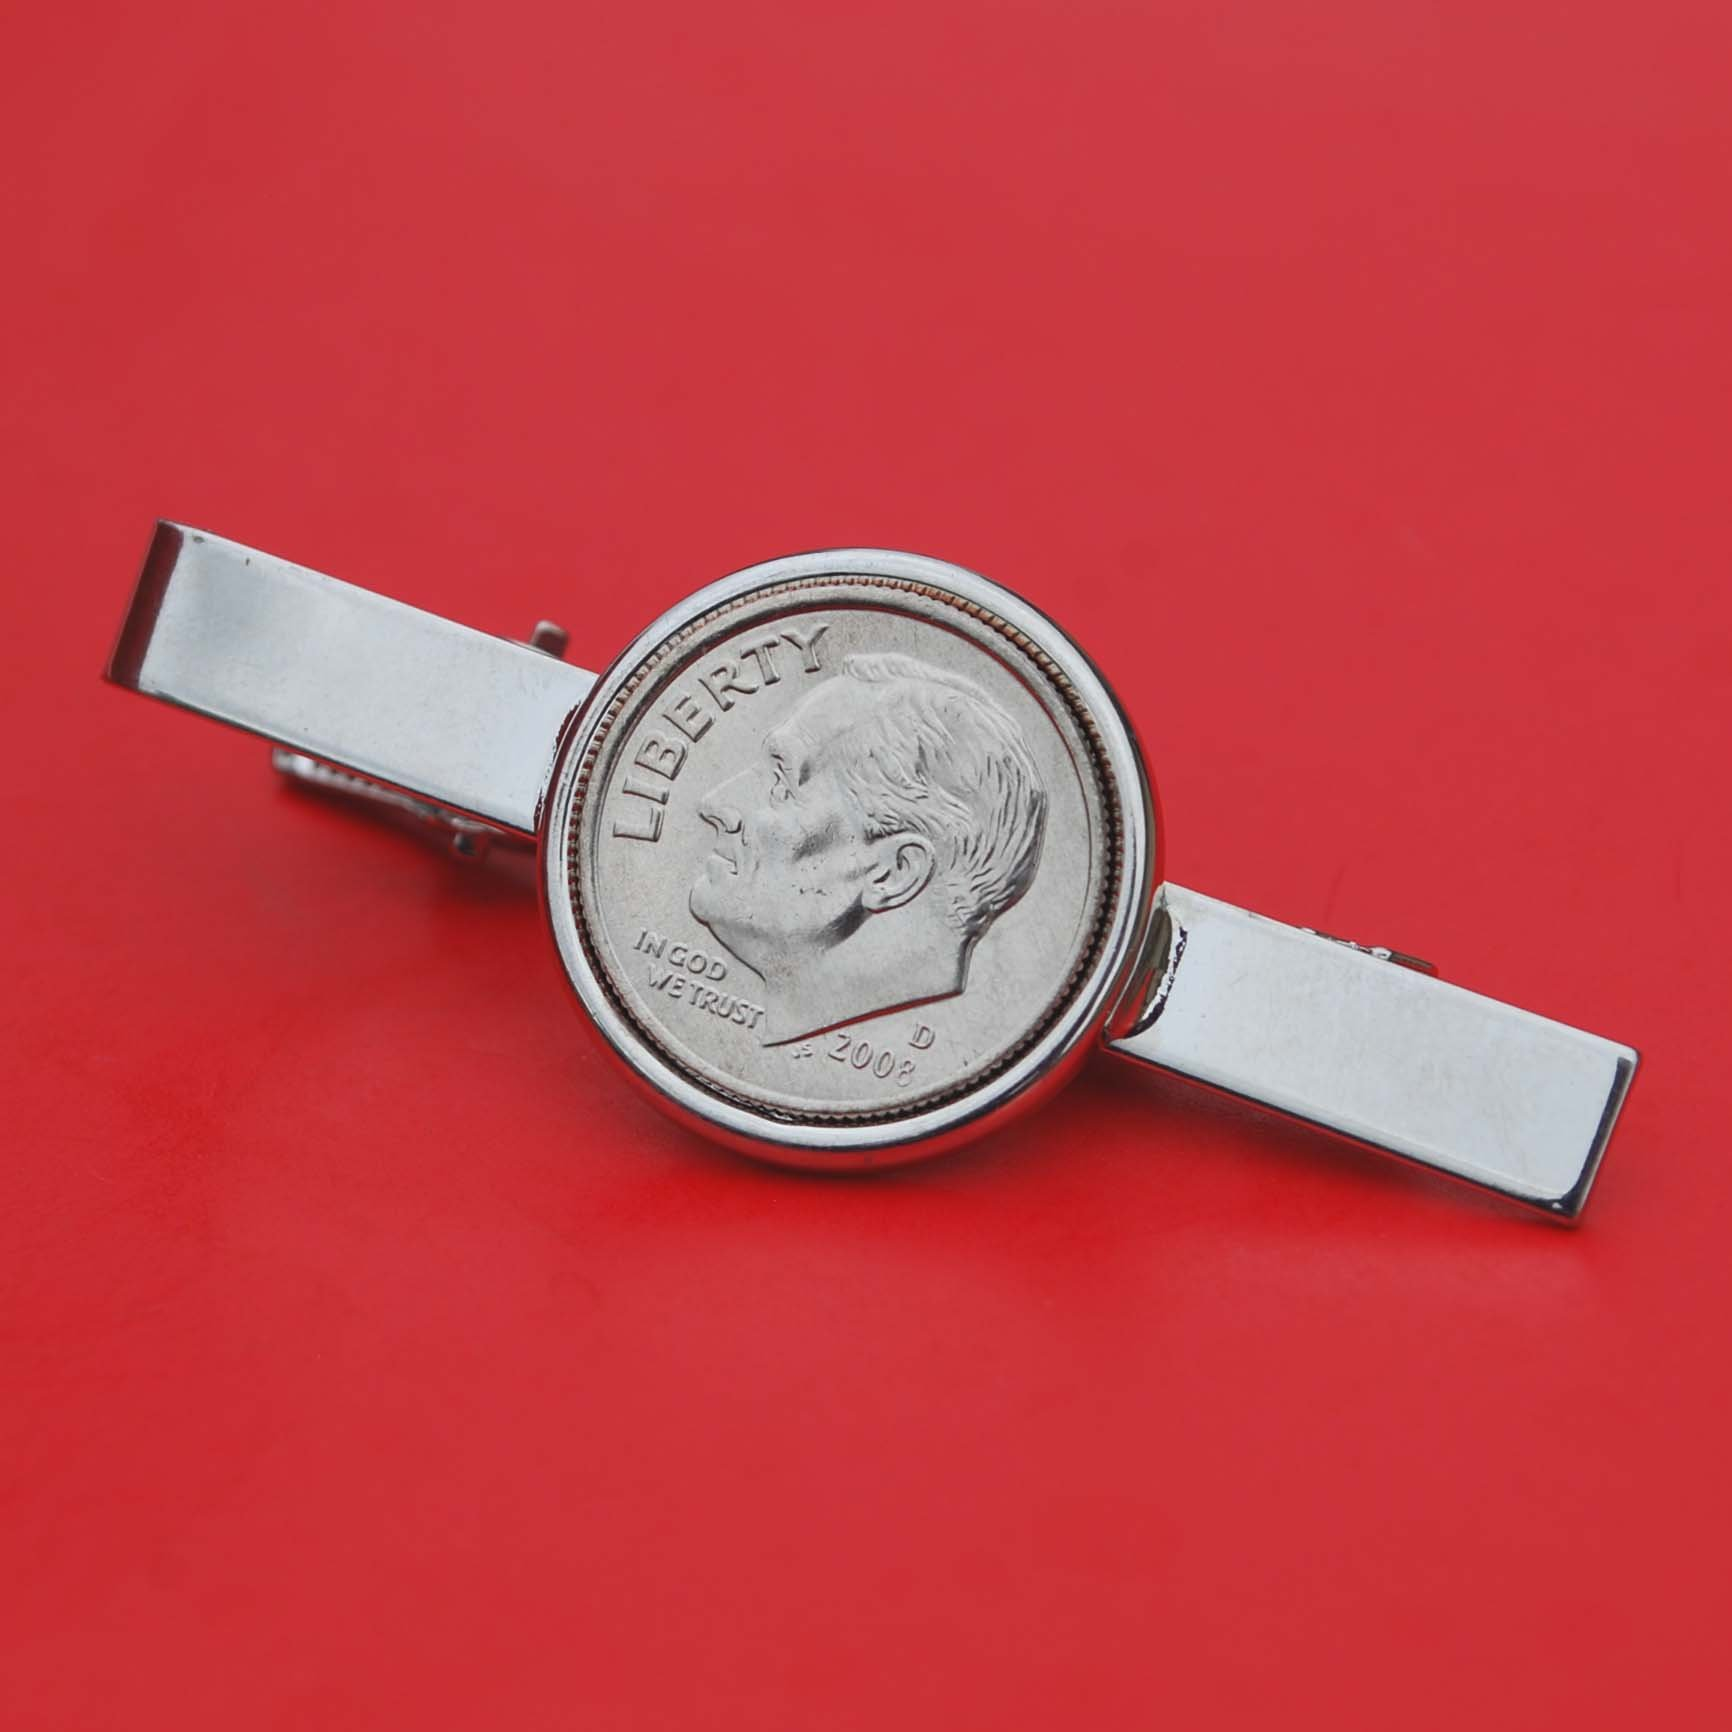 US 2008 Roosevelt Dime Gem BU Uncirculated 10 Cent Coin Silver Plated Tie Clip Bar Pin NEW